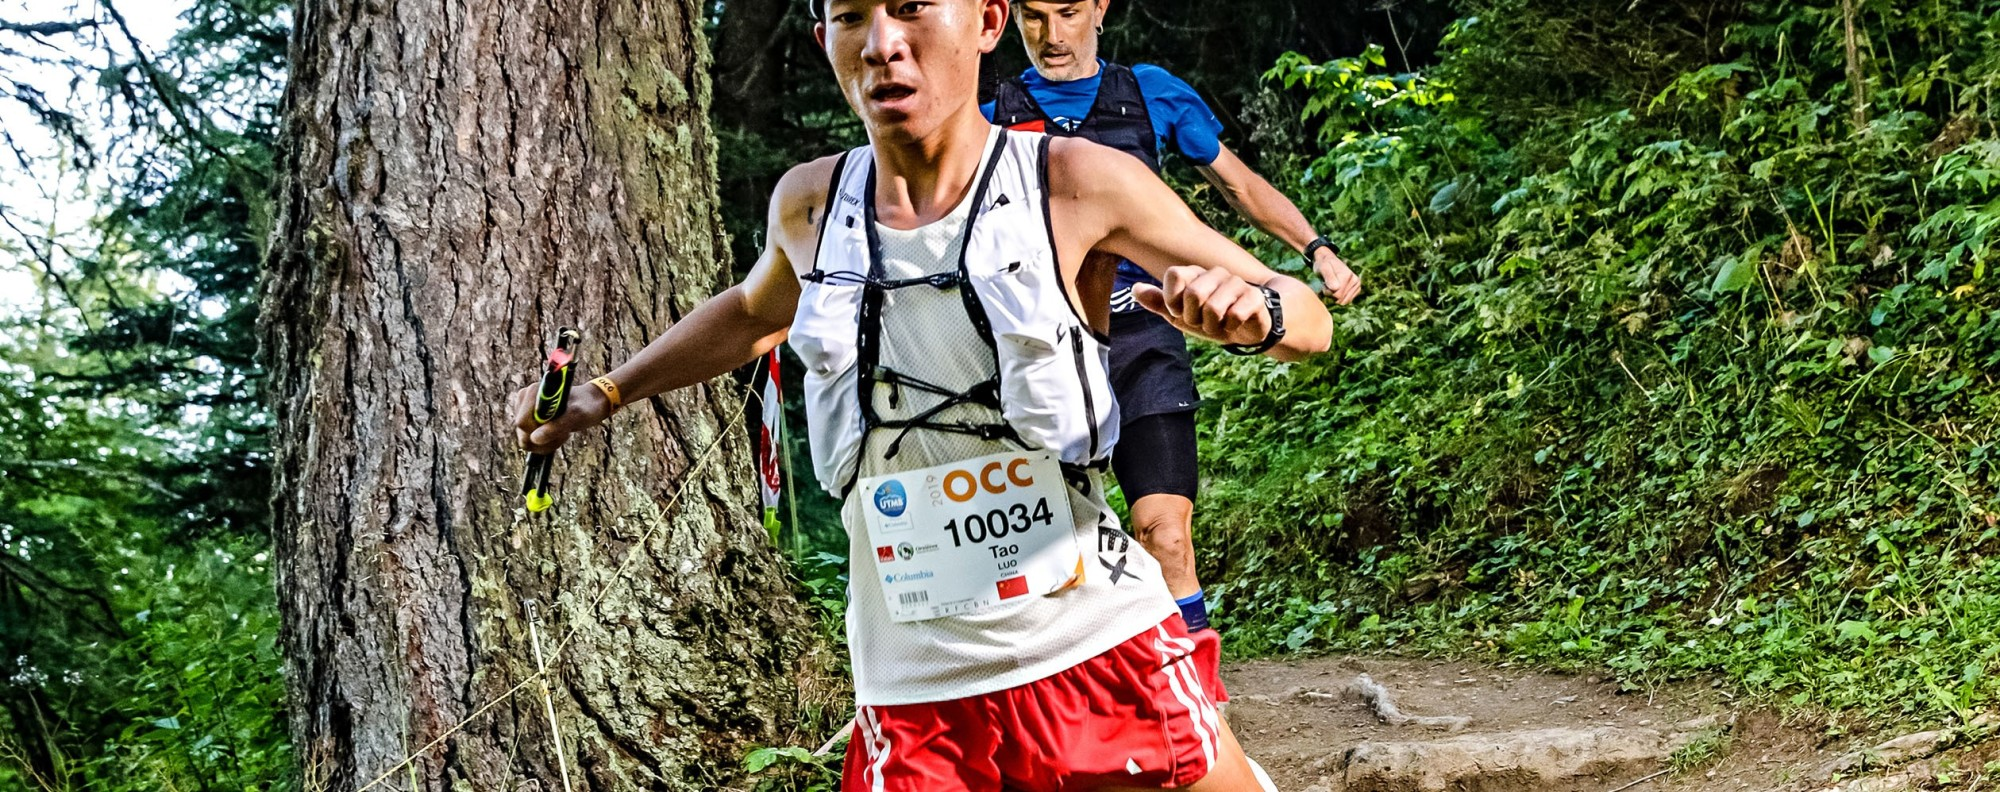 Luo Tao, third at the OCC, UTMB, impresses spectators with his fast downhills - training stability is key to a fast descent. Photo: UTMB